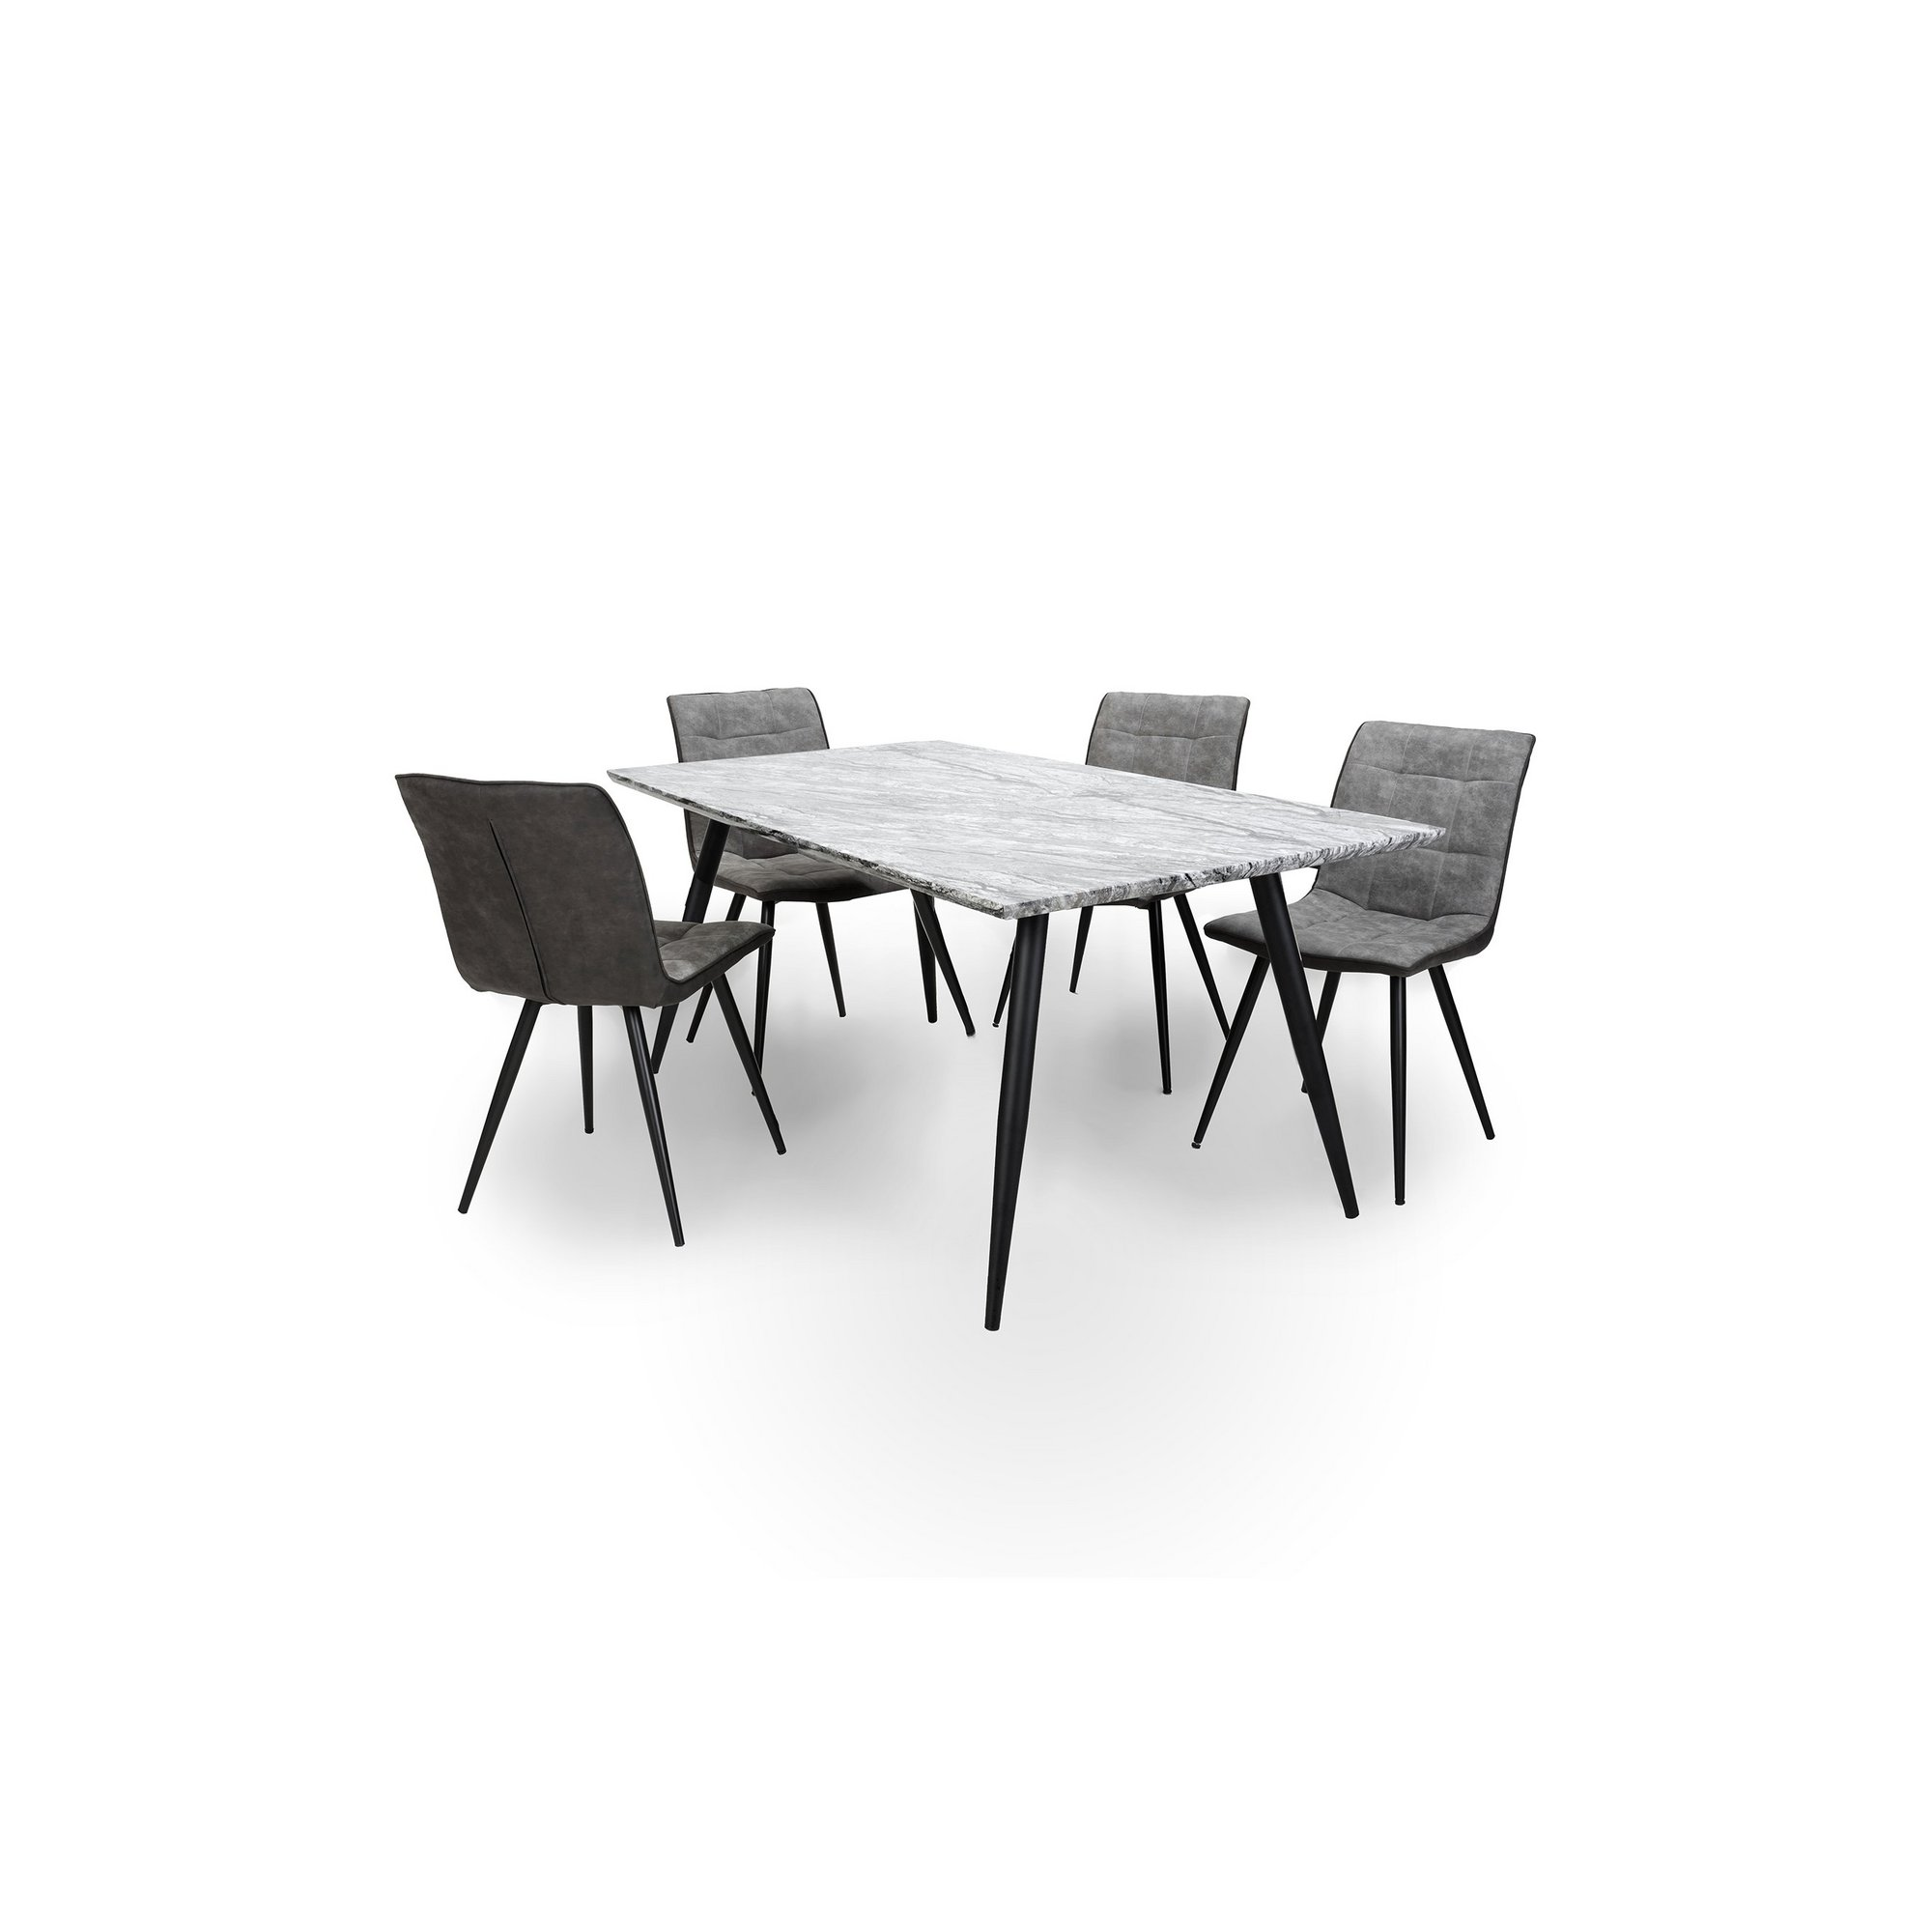 Image of Arden Marble Effect 5 Piece Dining Set